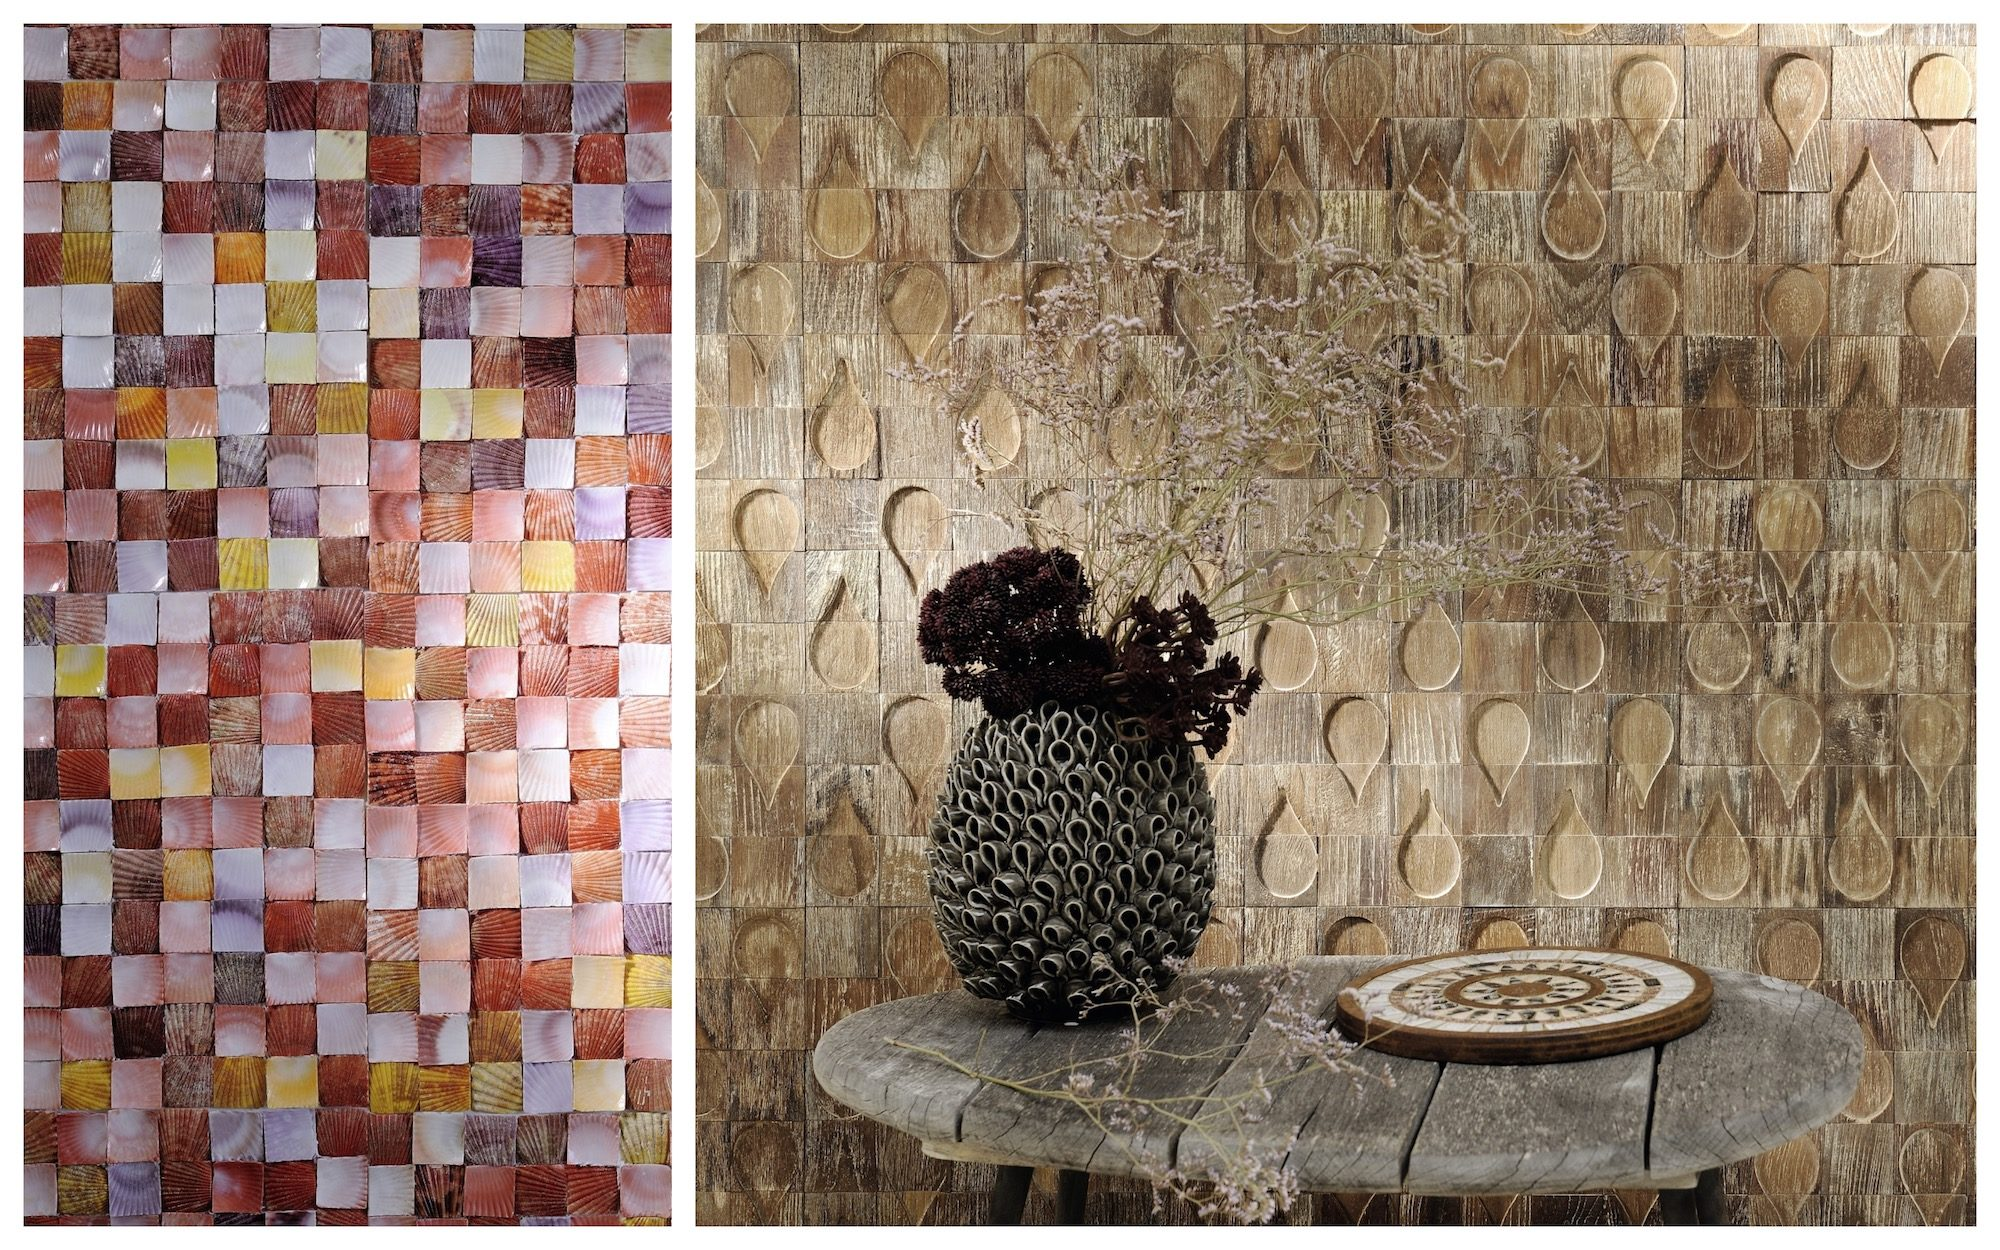 Colorful shell tiles (left) and a coral theme vase (right) at September's Maison et Objet design fair in Paris.